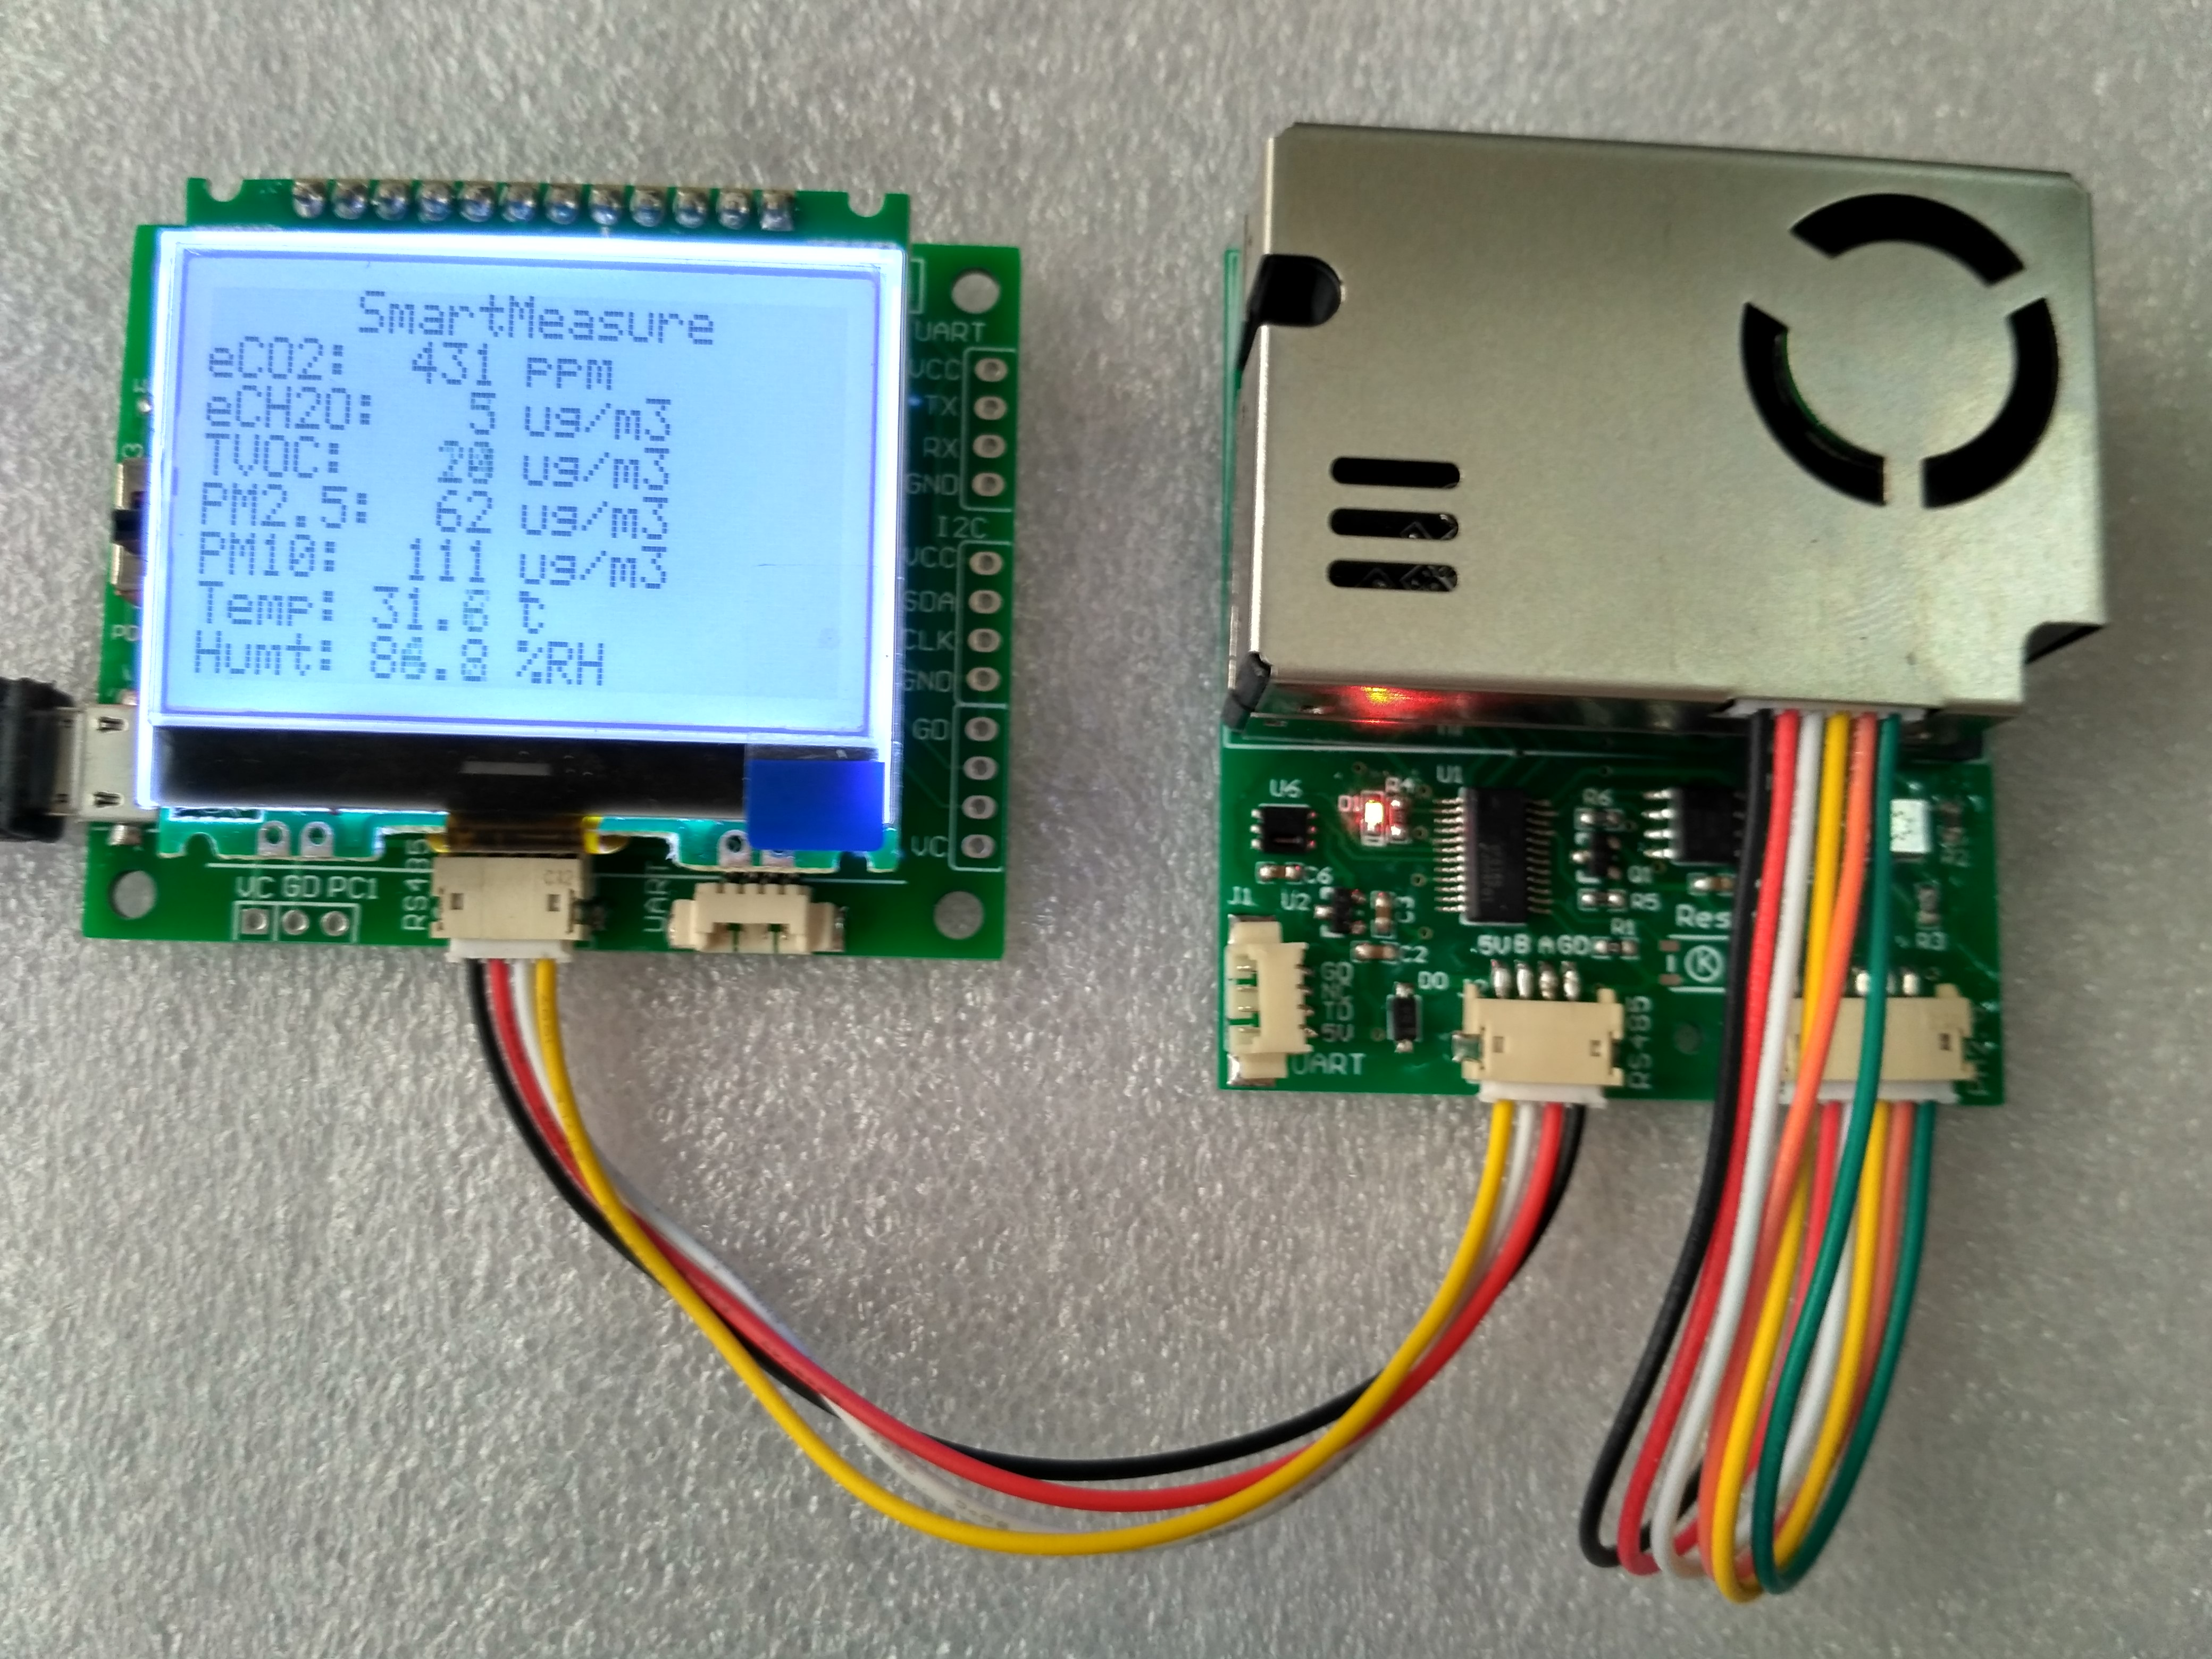 Sensor Module with Screen PM2.5 PM10 Temperature and Humidity C02 Formaldehyde TVOC tvoc tvoc tvoc